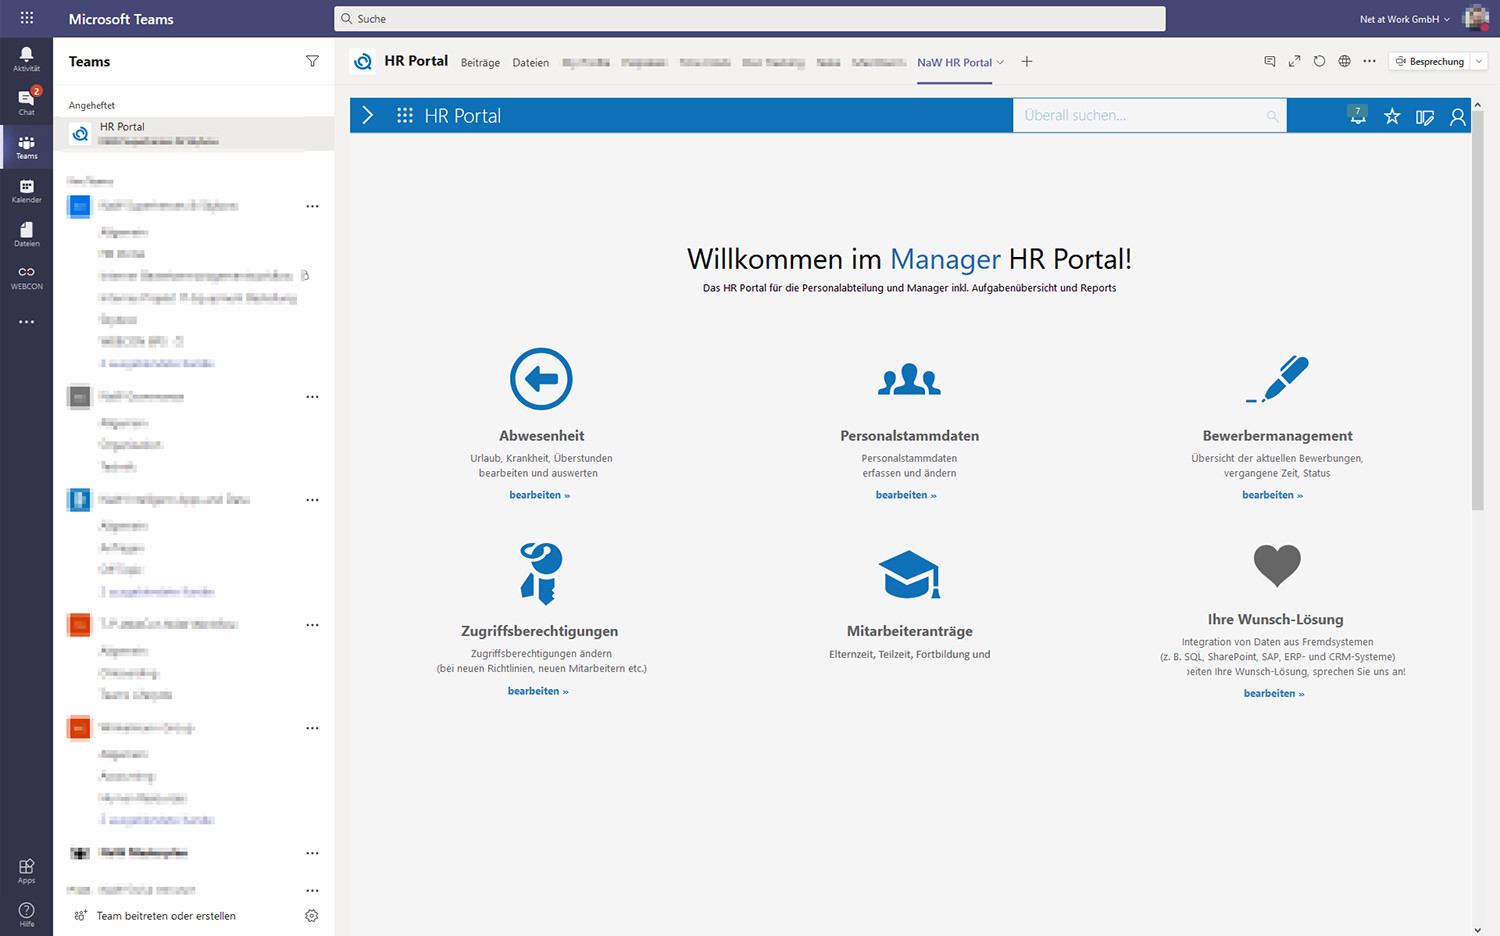 Manager HR Portal in Microsoft Teams